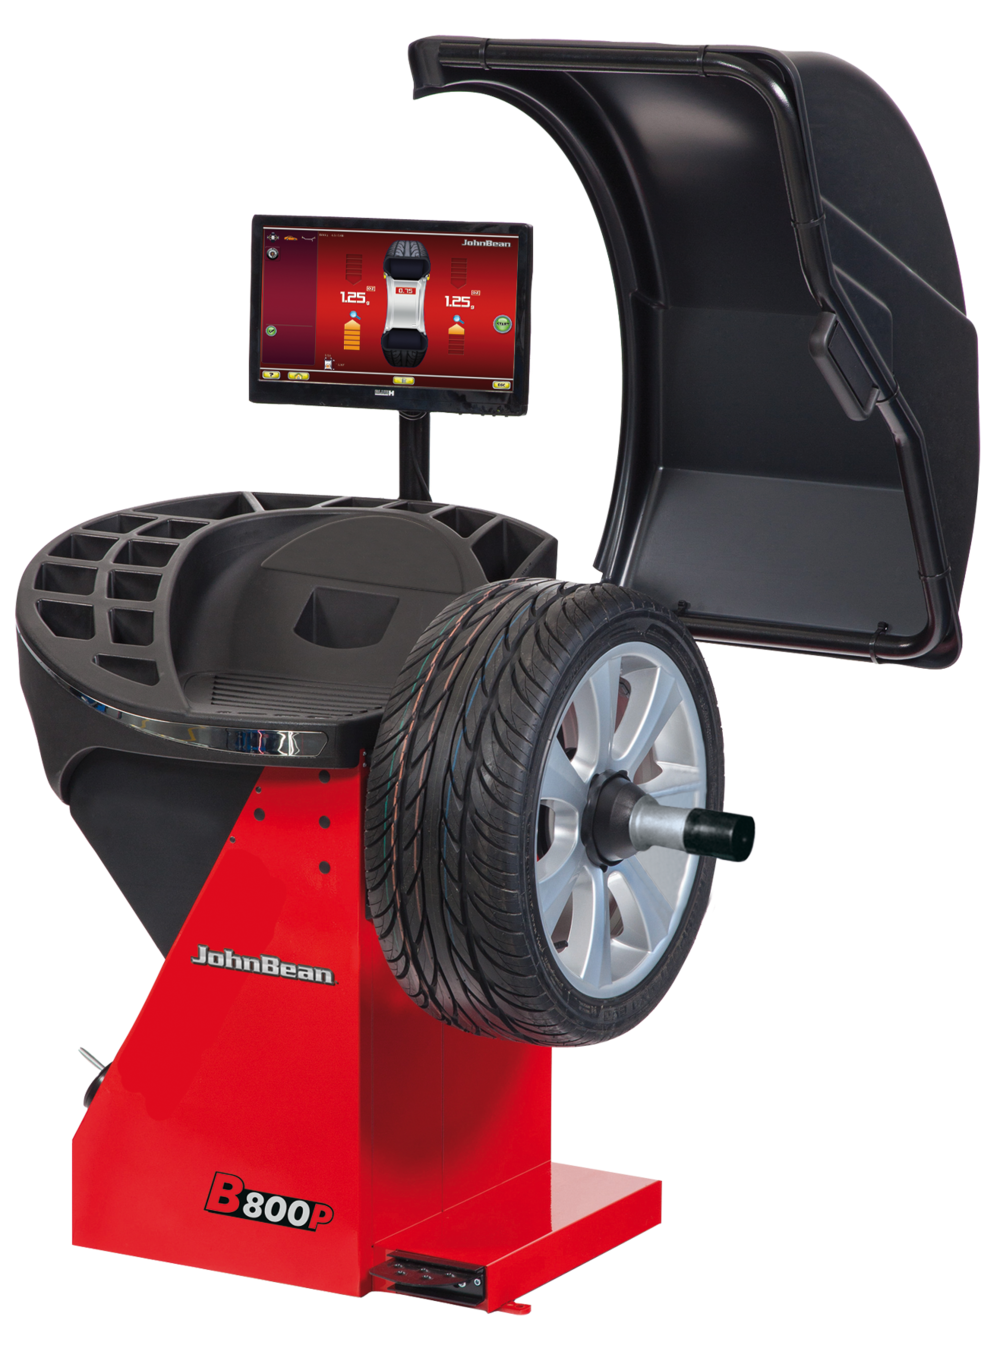 The John Bean B800P Wheel Balancer